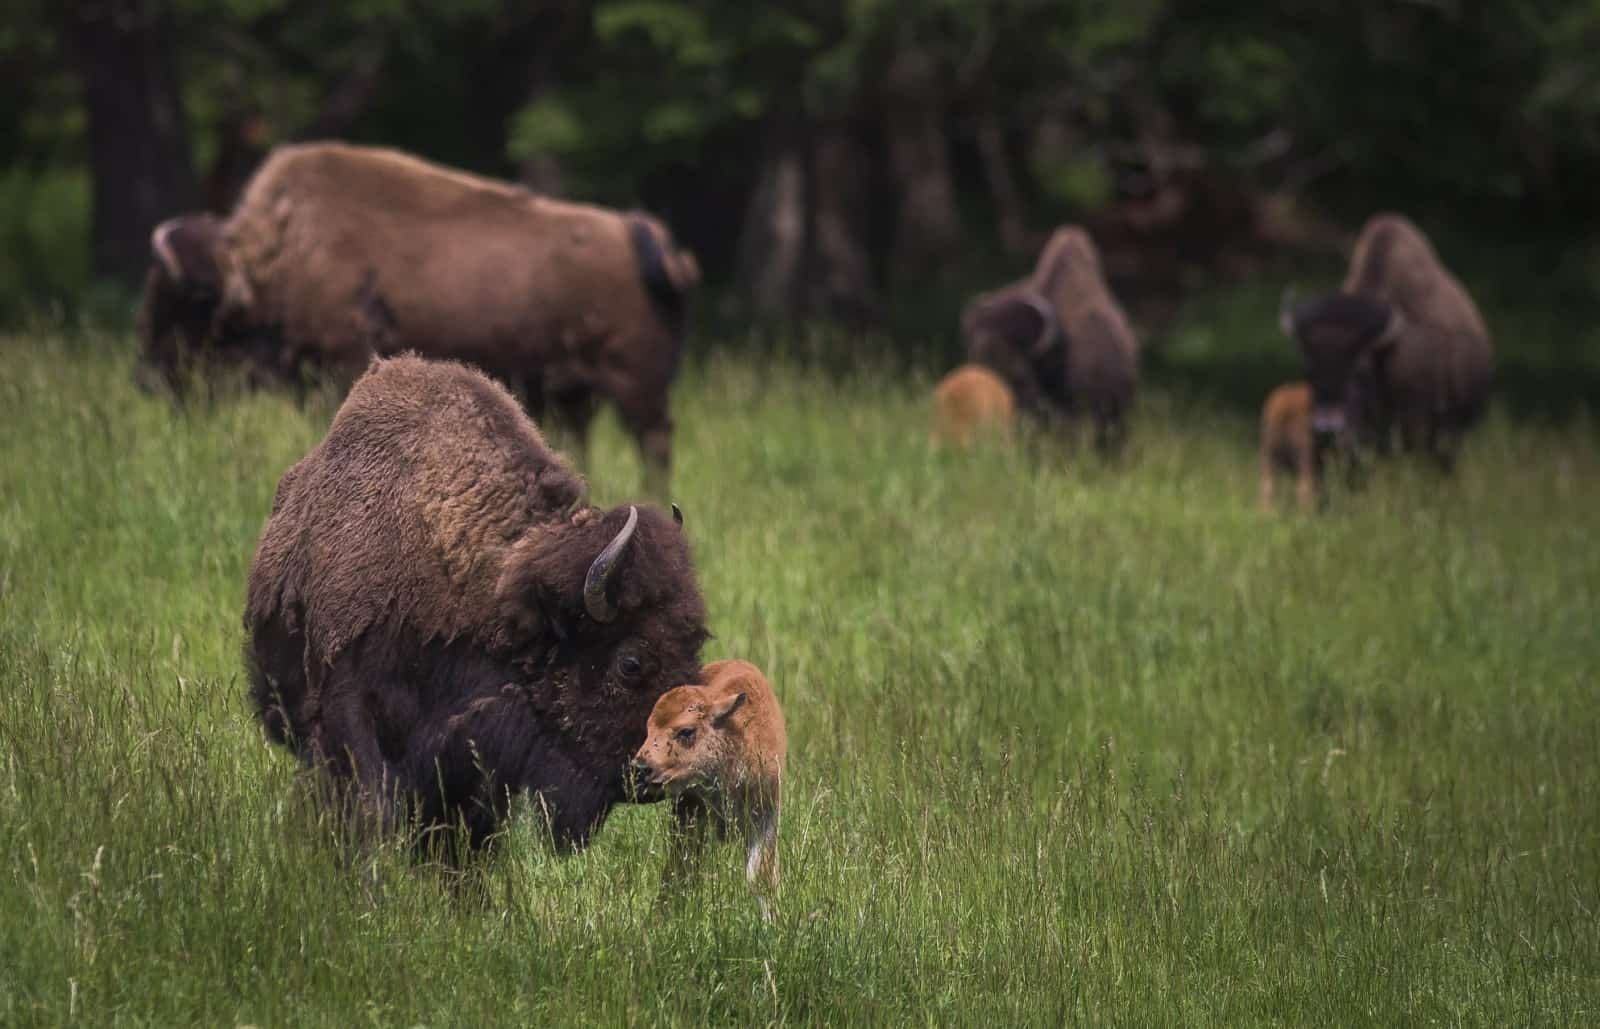 Bison with babies in a field